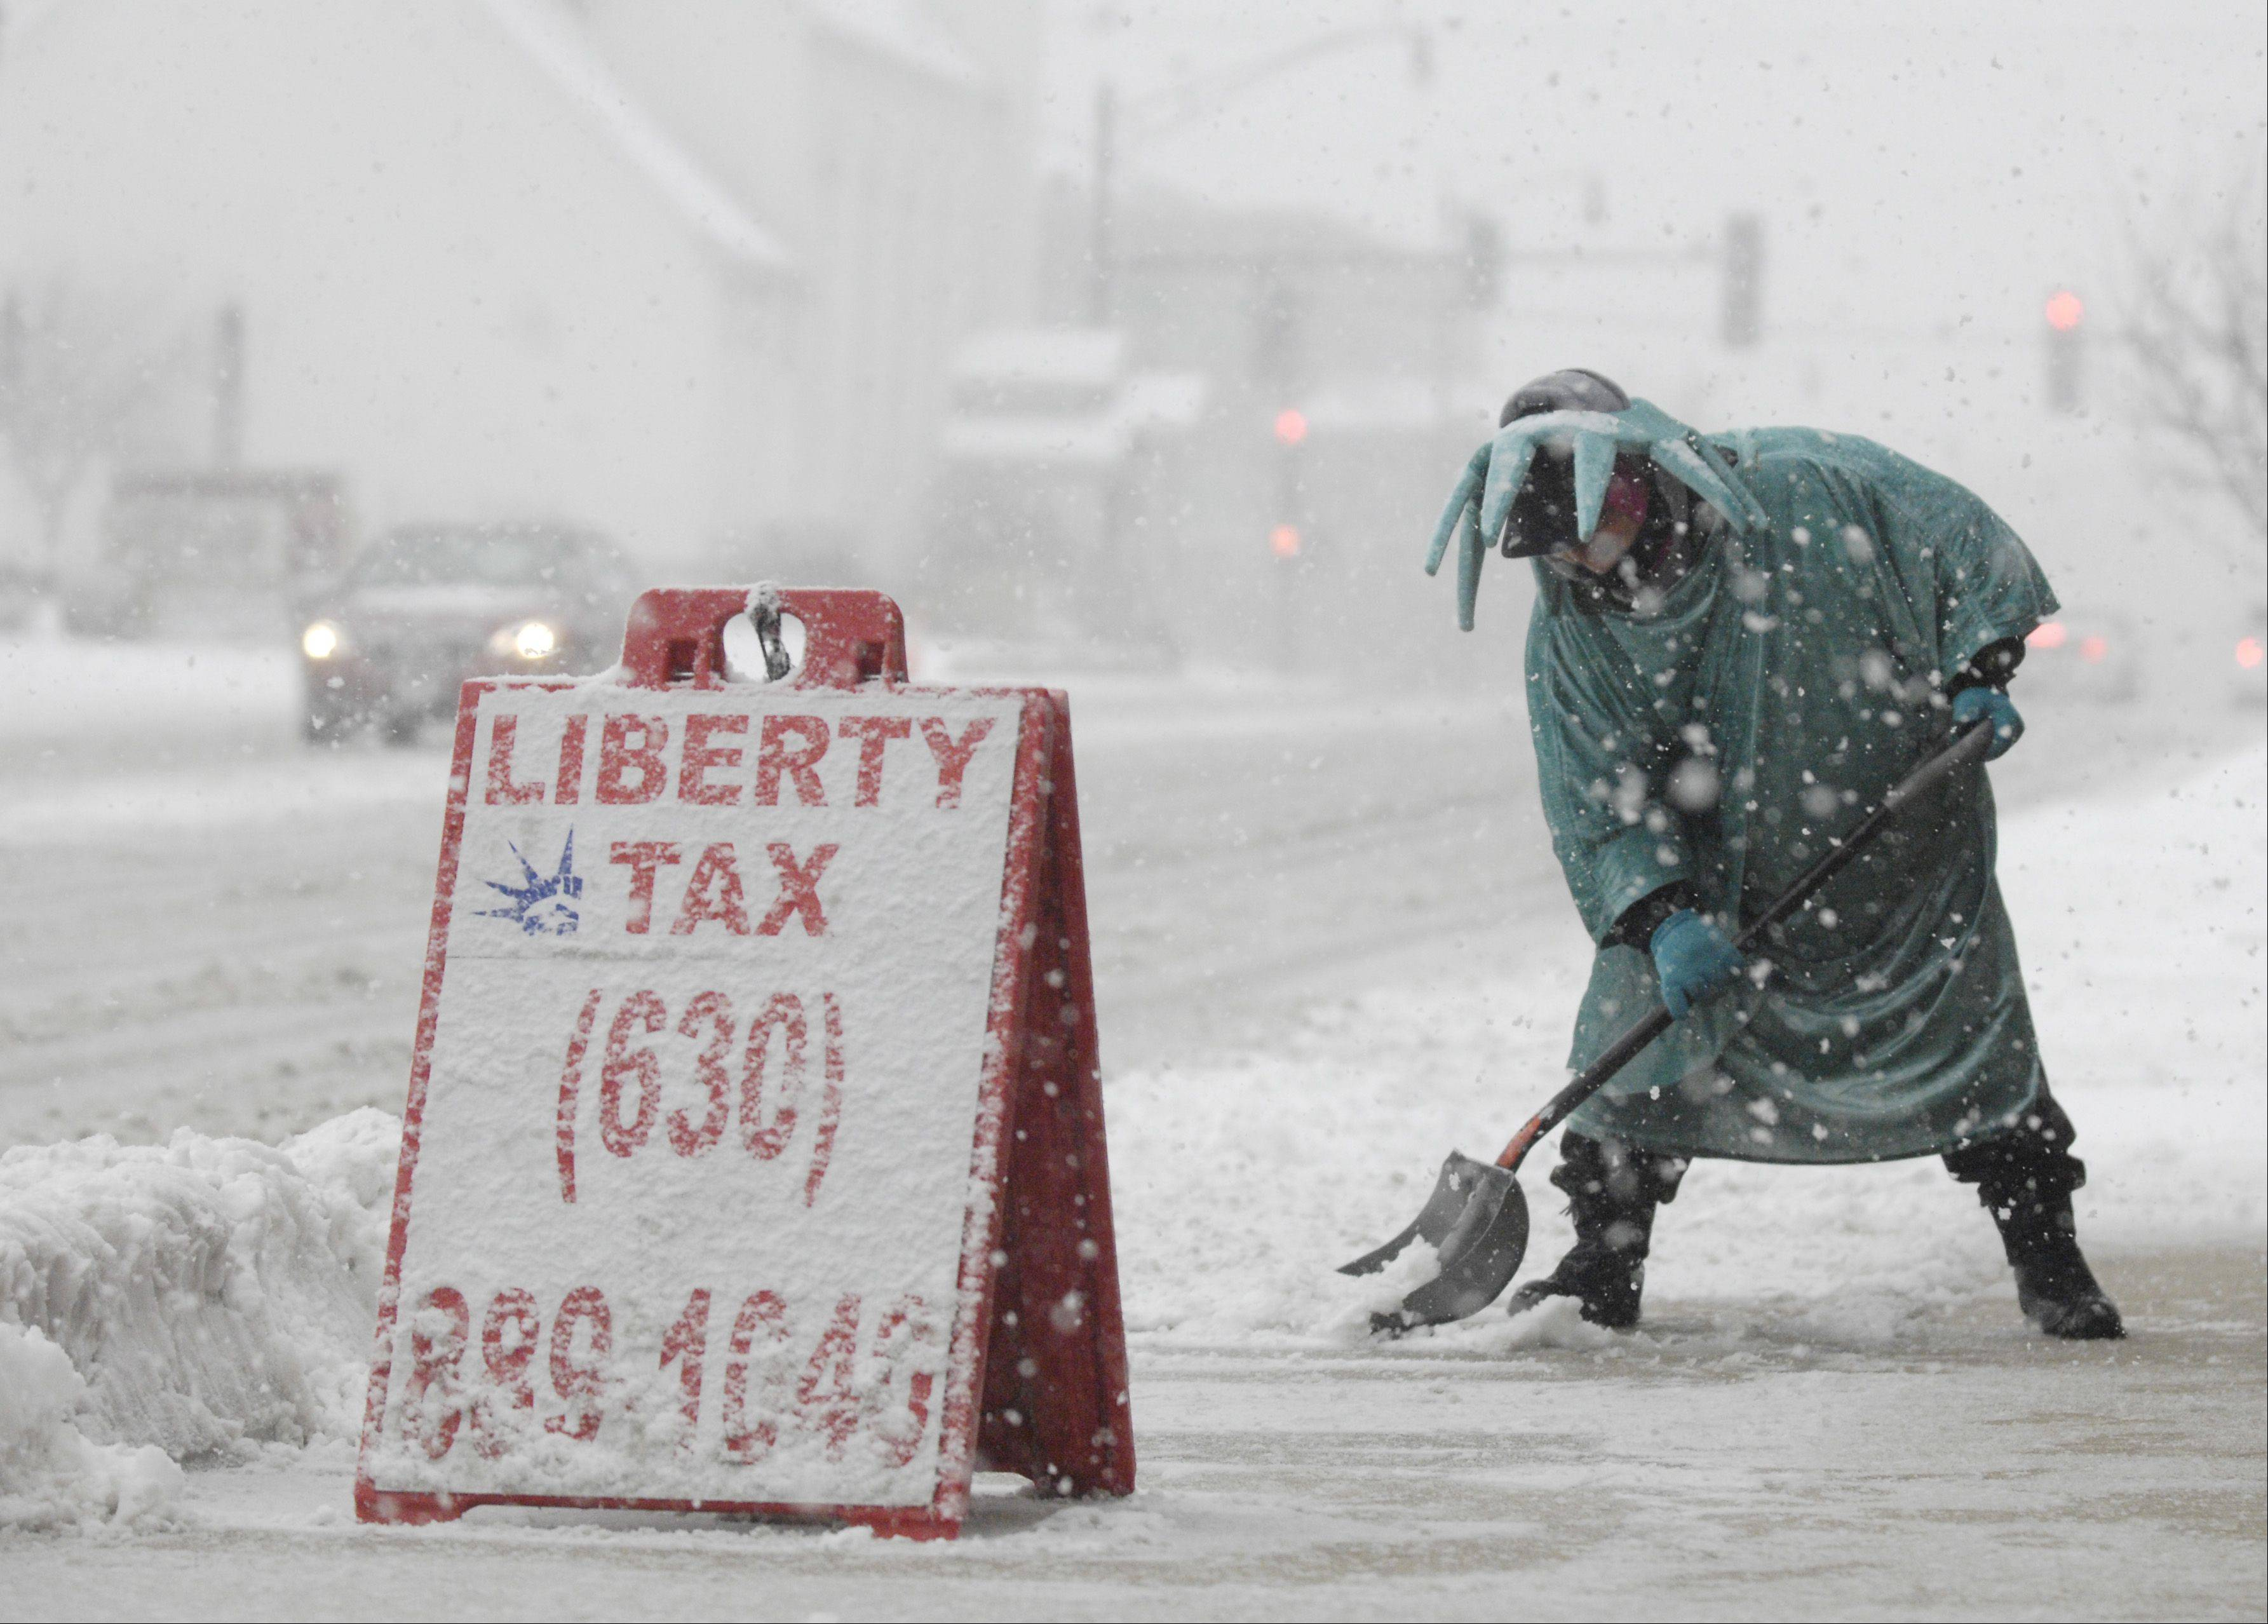 Actor Steve Sparks shovels snow dressed as the Statue of Liberty in front of Liberty Tax in Lombard, Tuesday.